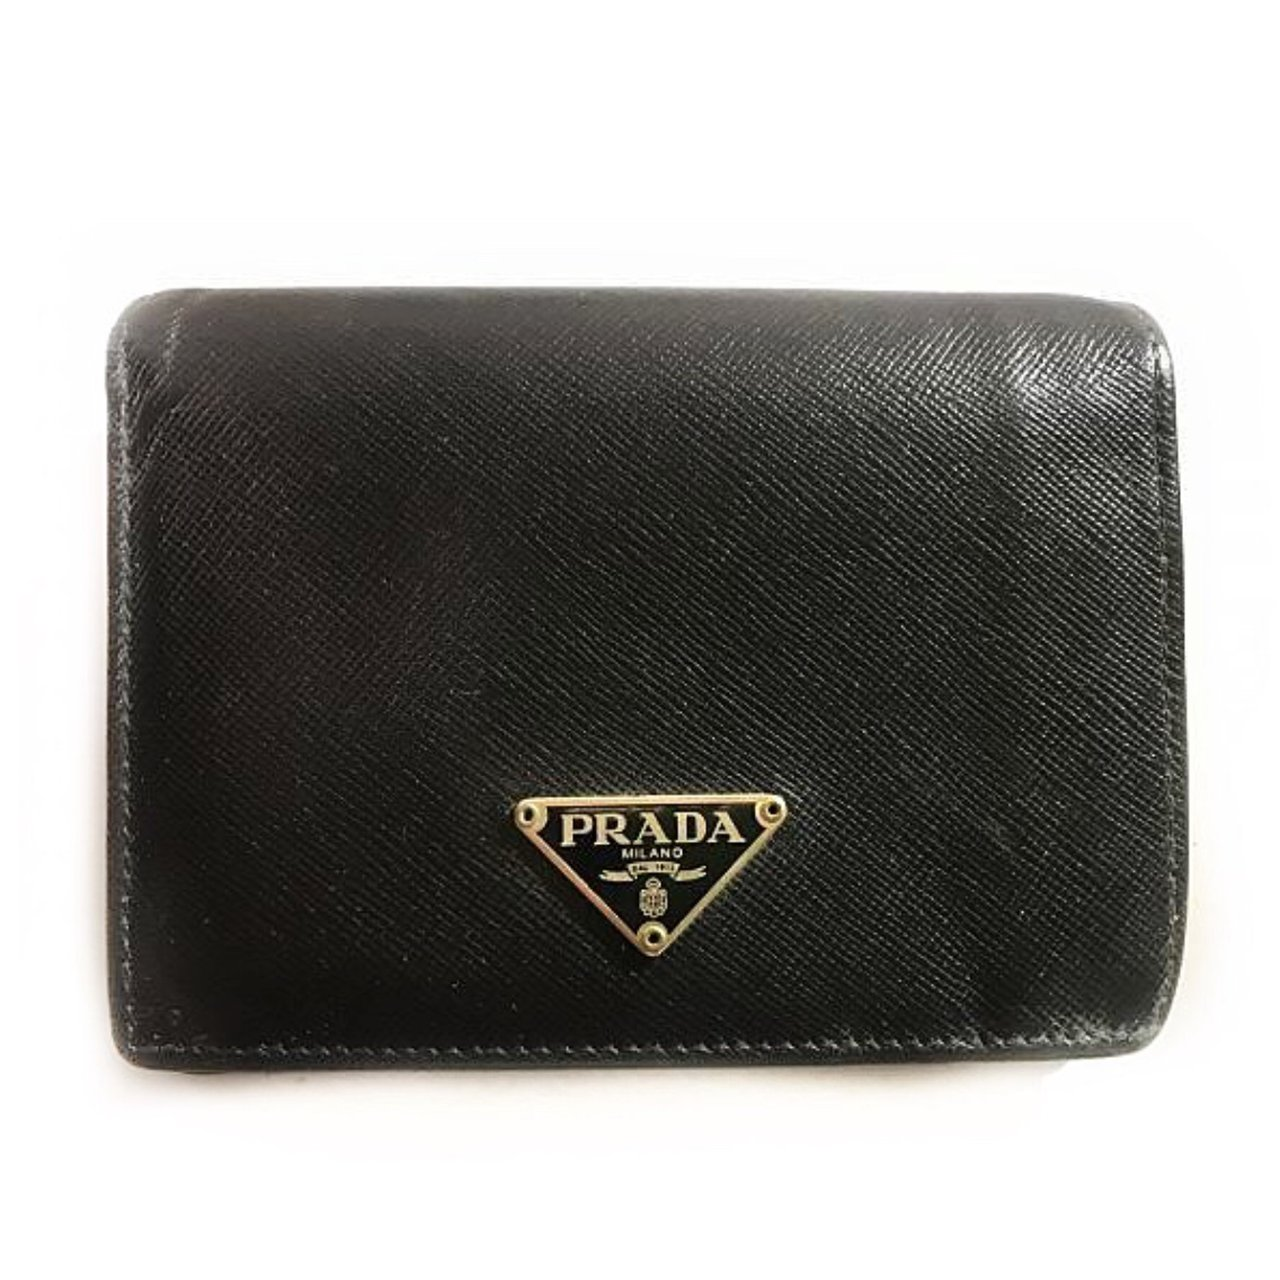 a69a37cfe587 @sxlmx_. in 12 hours. Birmingham, United Kingdom. Prada wallet purse. In used  but good condition.